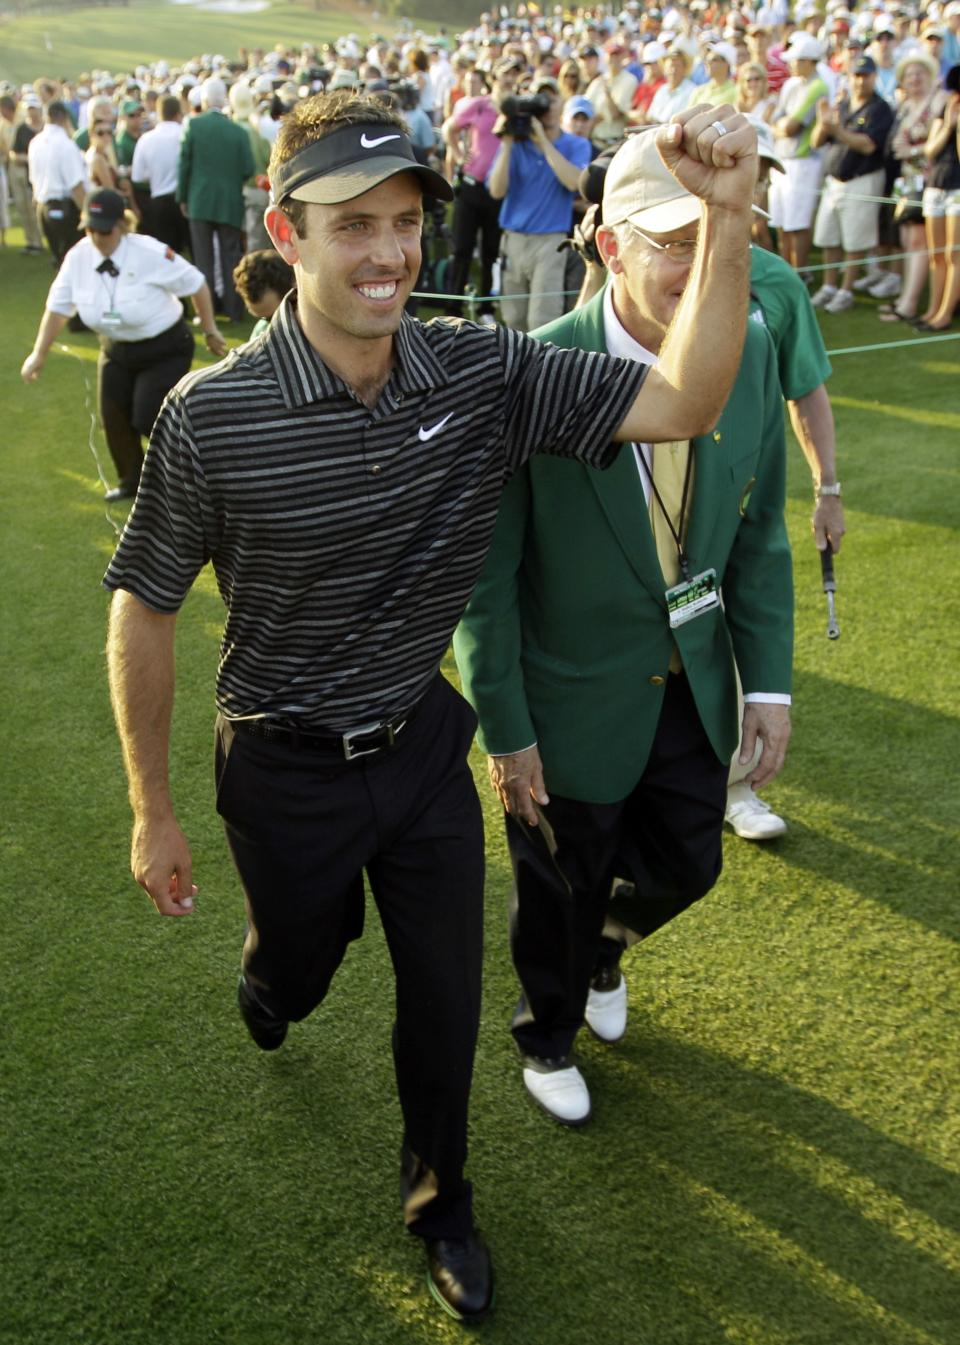 Charl Schwartzel of South Africa celebrates after finishing the final round of the Masters golf tournament Sunday, April 10, 2011, in Augusta, Ga. (AP Photo/Dave Martin)